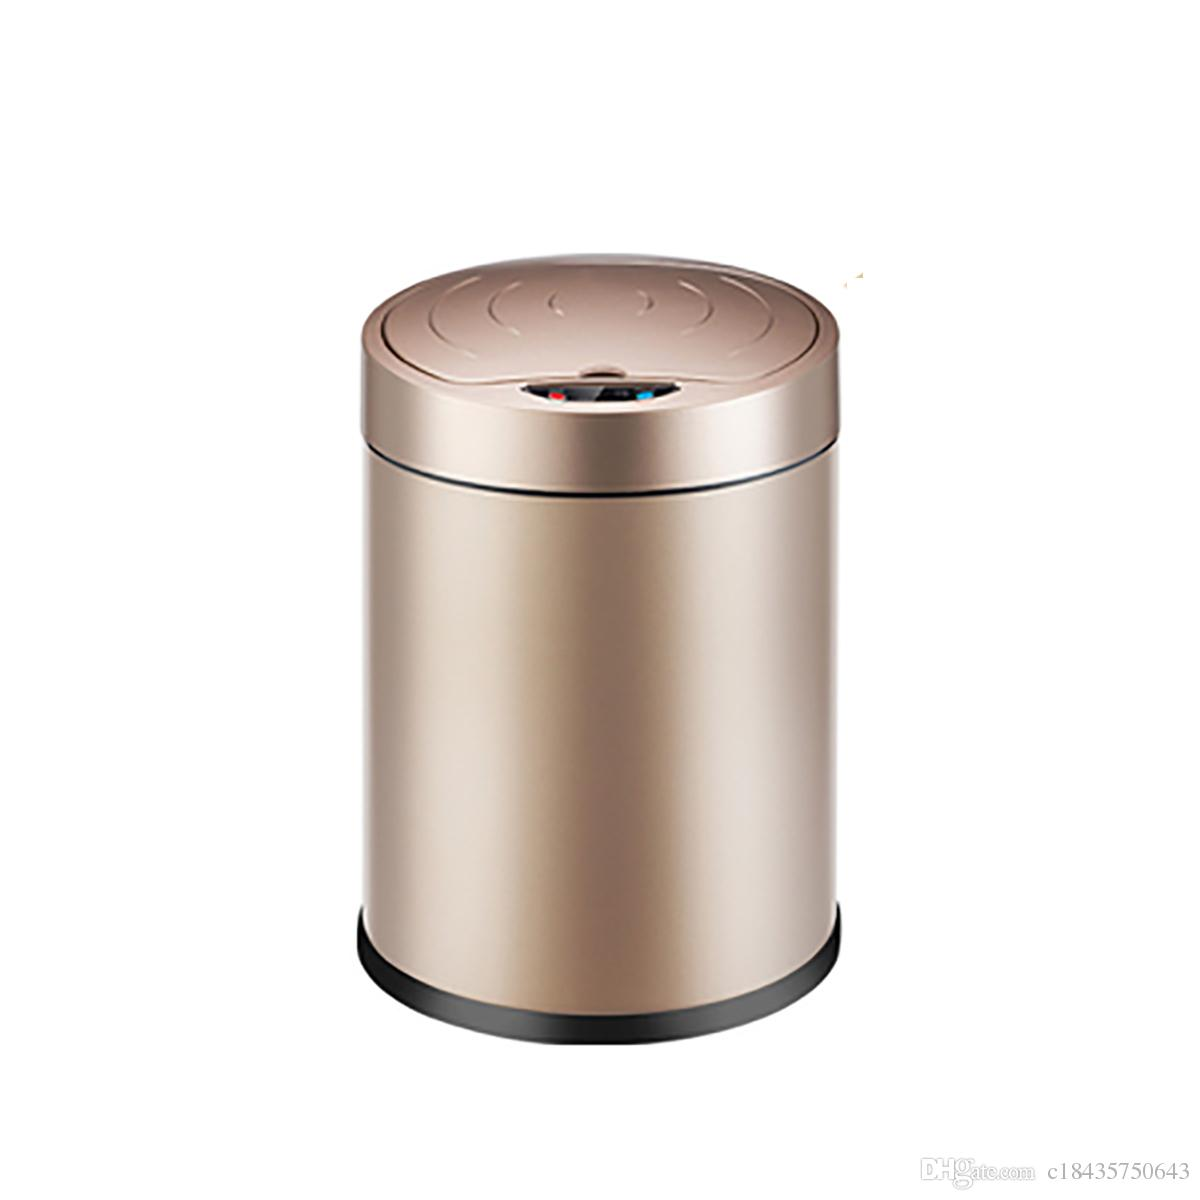 Copper Trash Can With Lid 12l Automatic Trash Can Touchless Intelligent Induction Garbage Bin With Inner Bucket Contactless Circulator Quiet Lid Close Can Silver